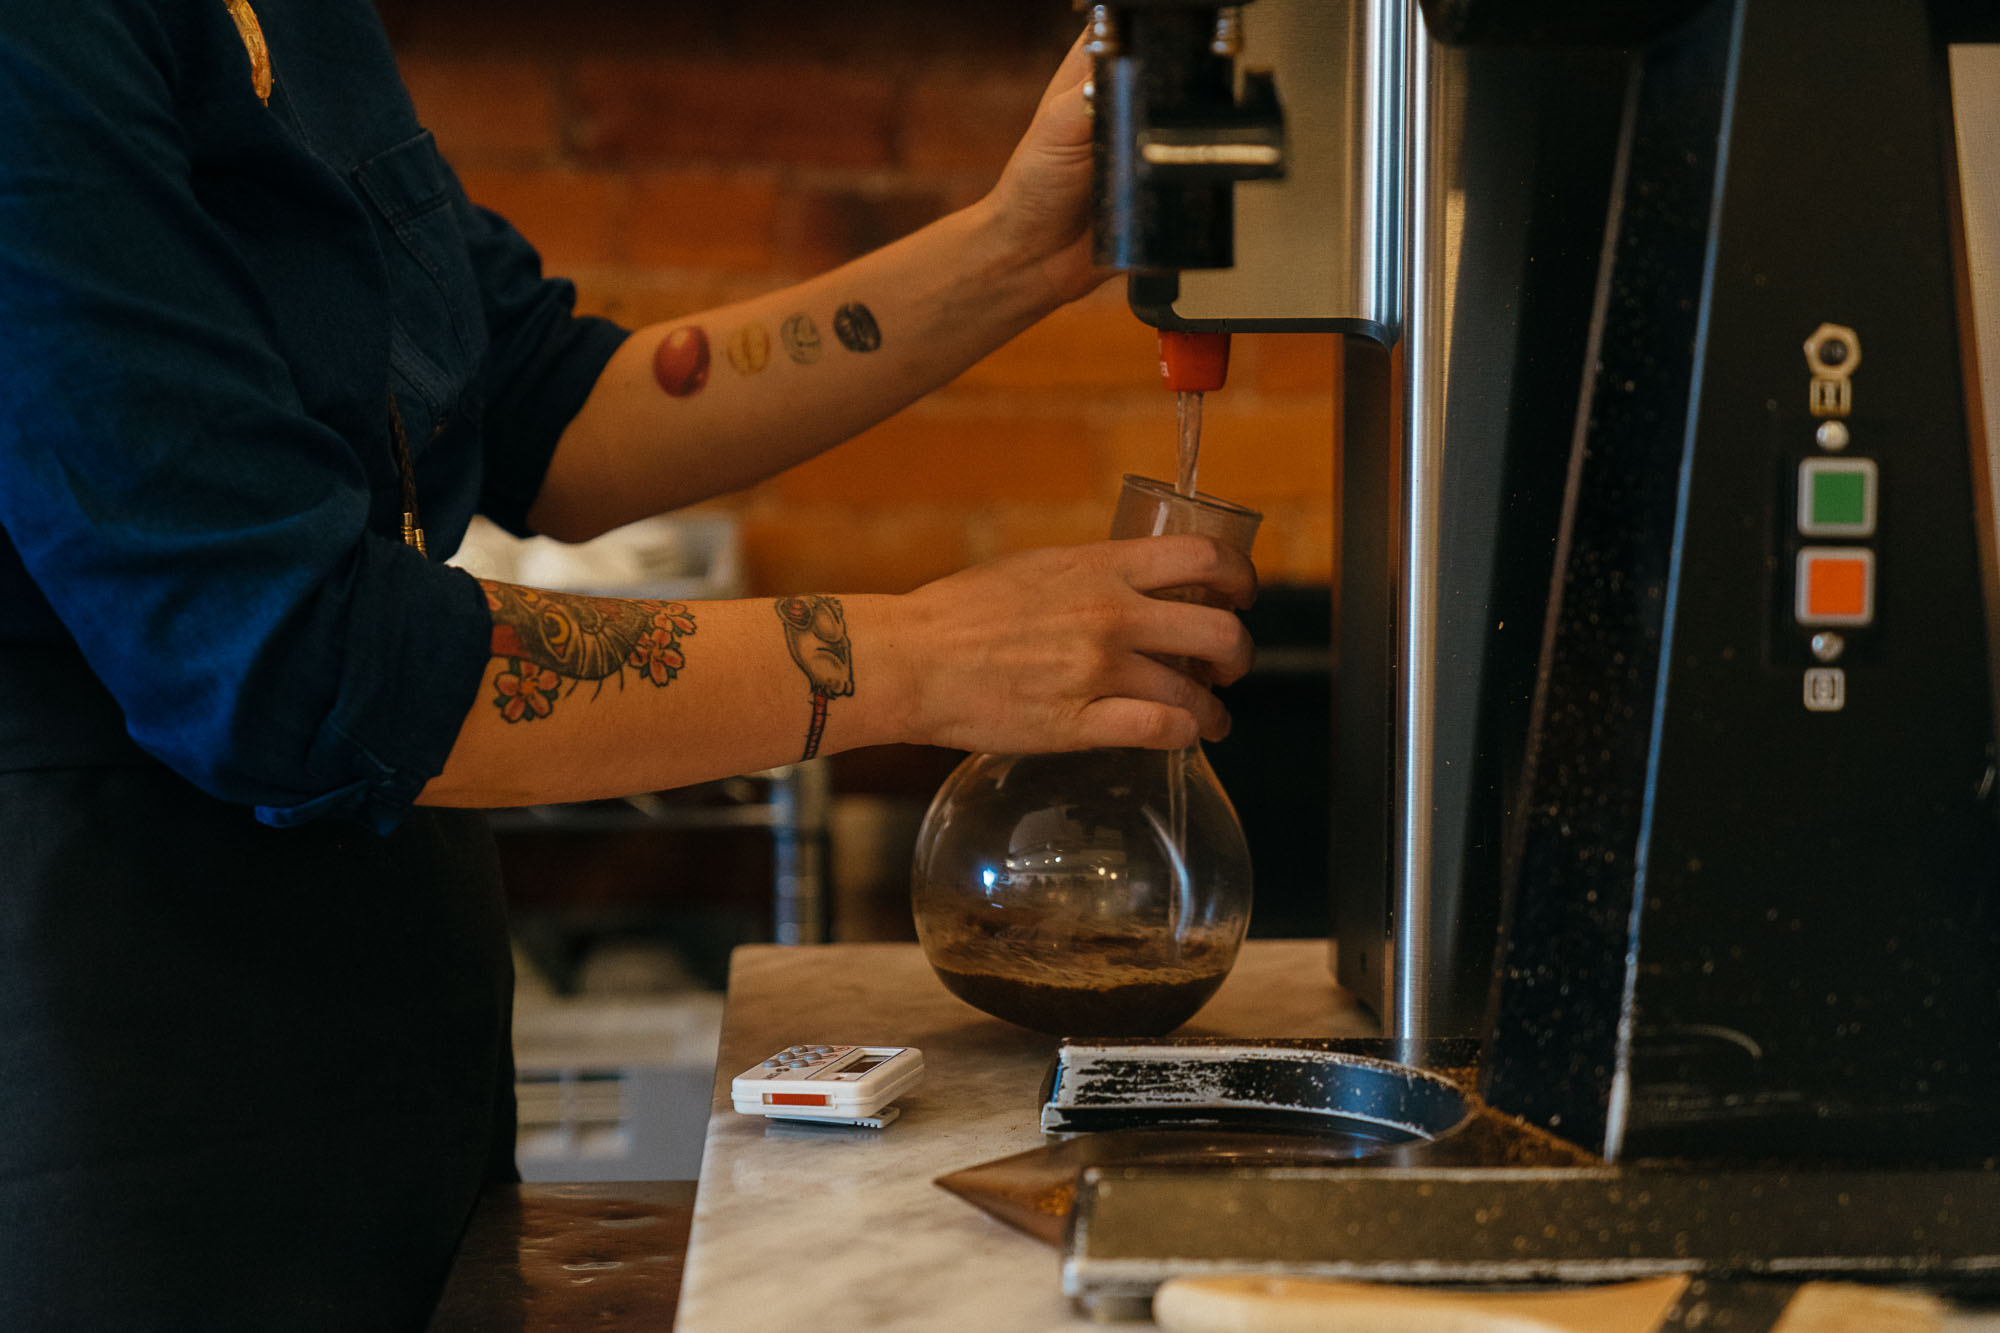 A barista adds warm water to coffee at Boxcar Coffee Roasters in Boulder, Colorado.